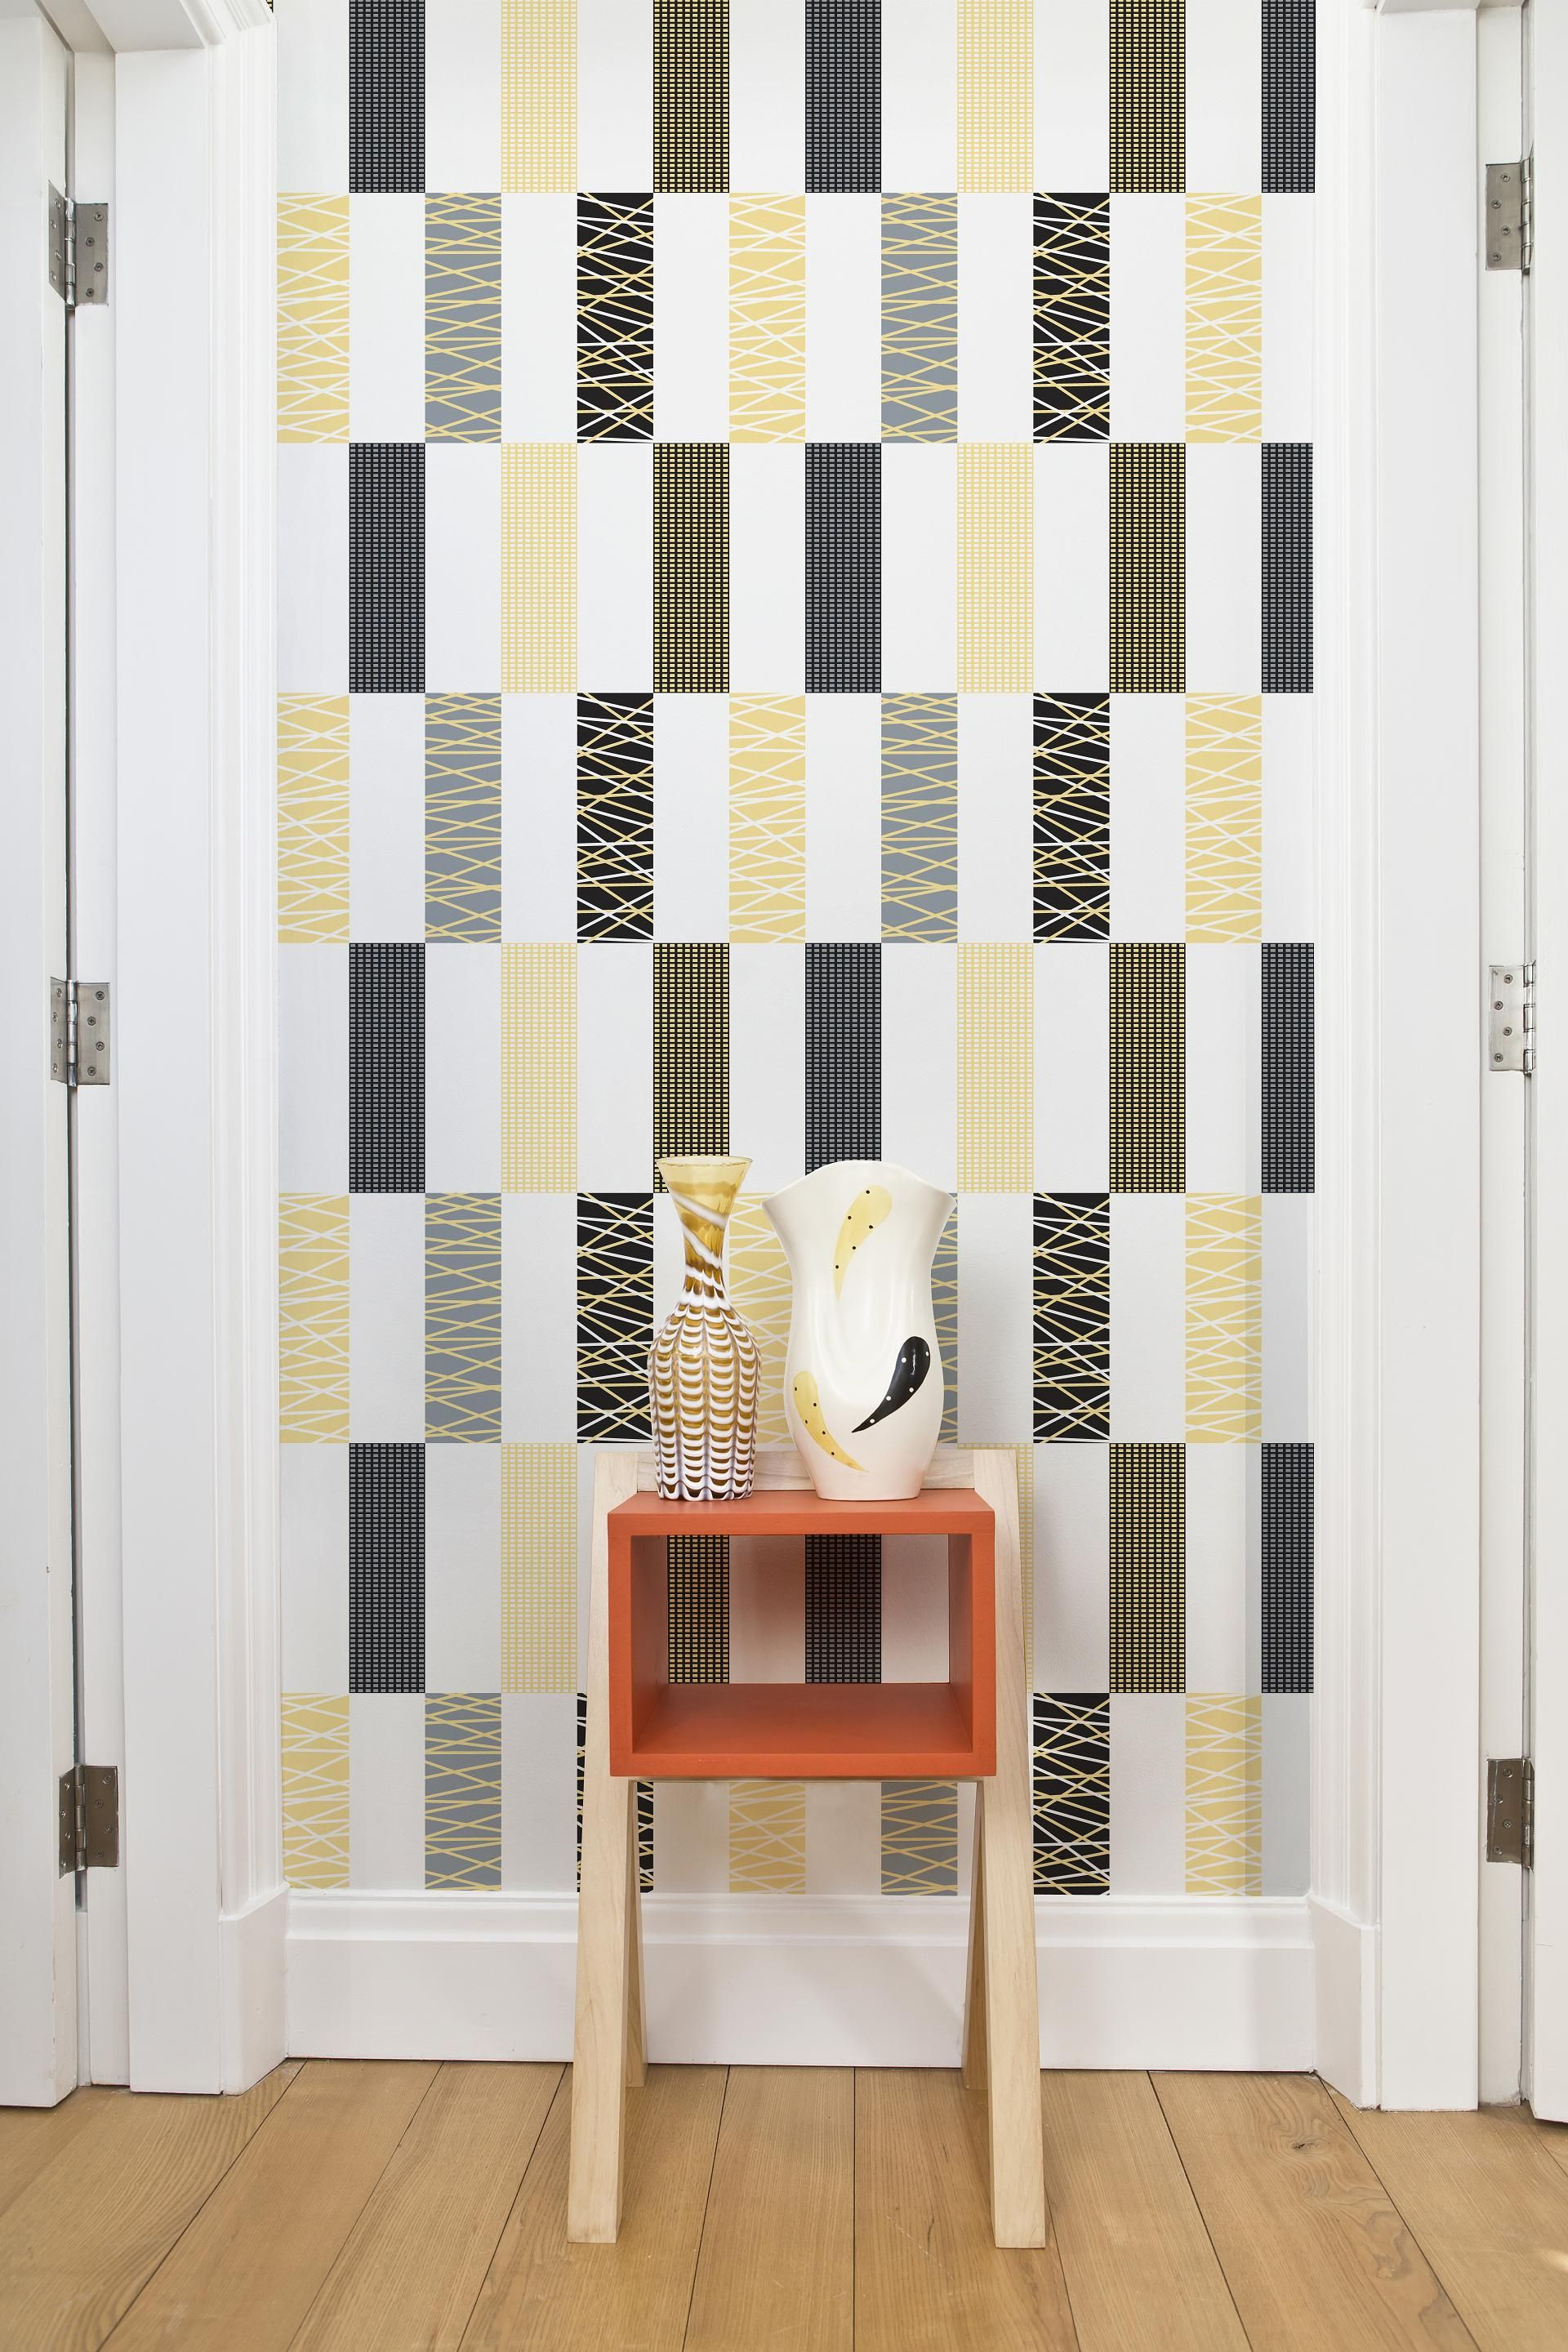 Rectangle Grid Wallpaper From Layla Faye One Of Two Wallpaper Selections To Try Grid Wallpaper Printed Shower Curtain Designer Wallpaper